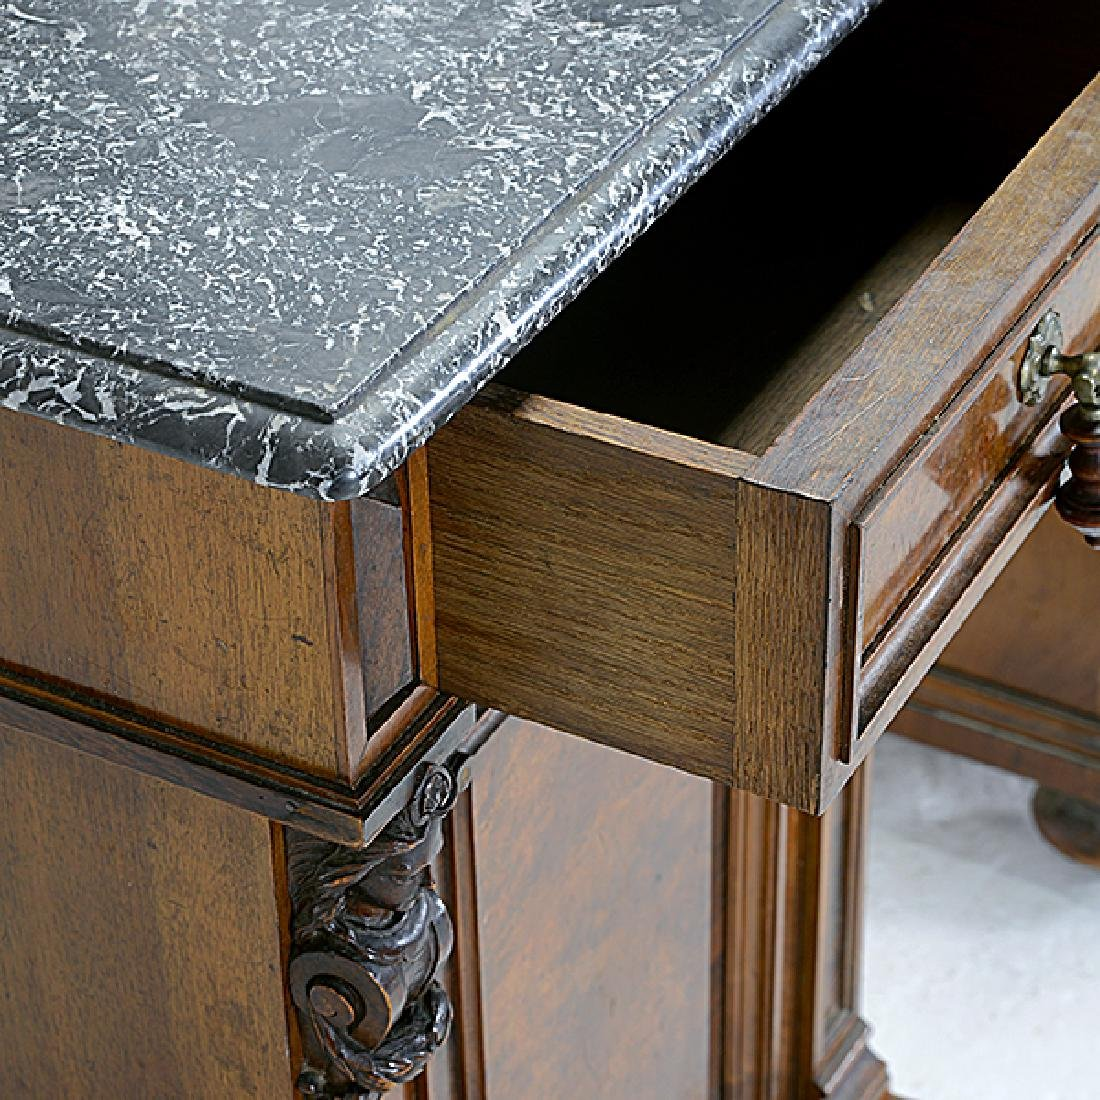 Pair of Rococo Revival Bedside Tables with Commode - 5